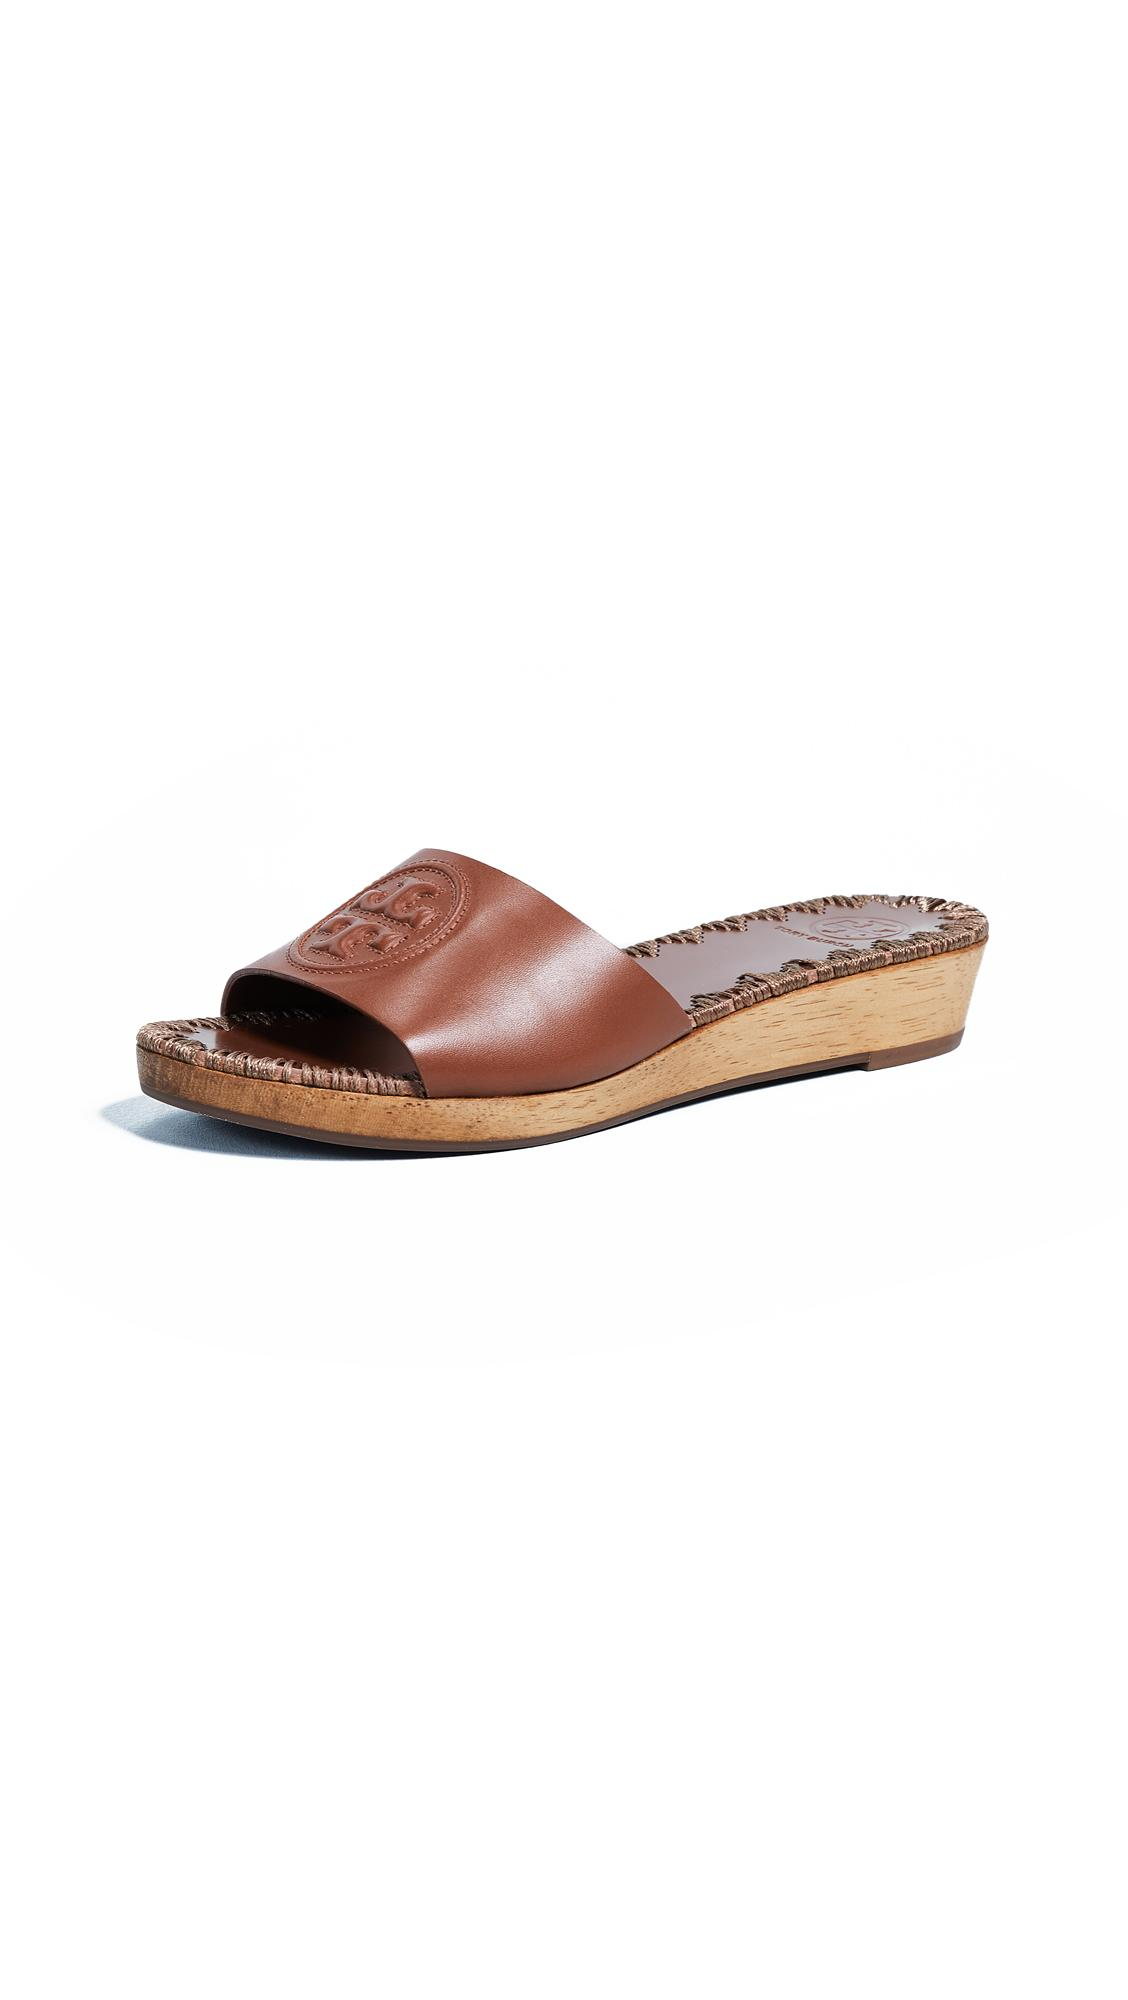 bc574f0b10b Tory Burch Patty 35Mm Wedge Slides In Perfect Cuoio